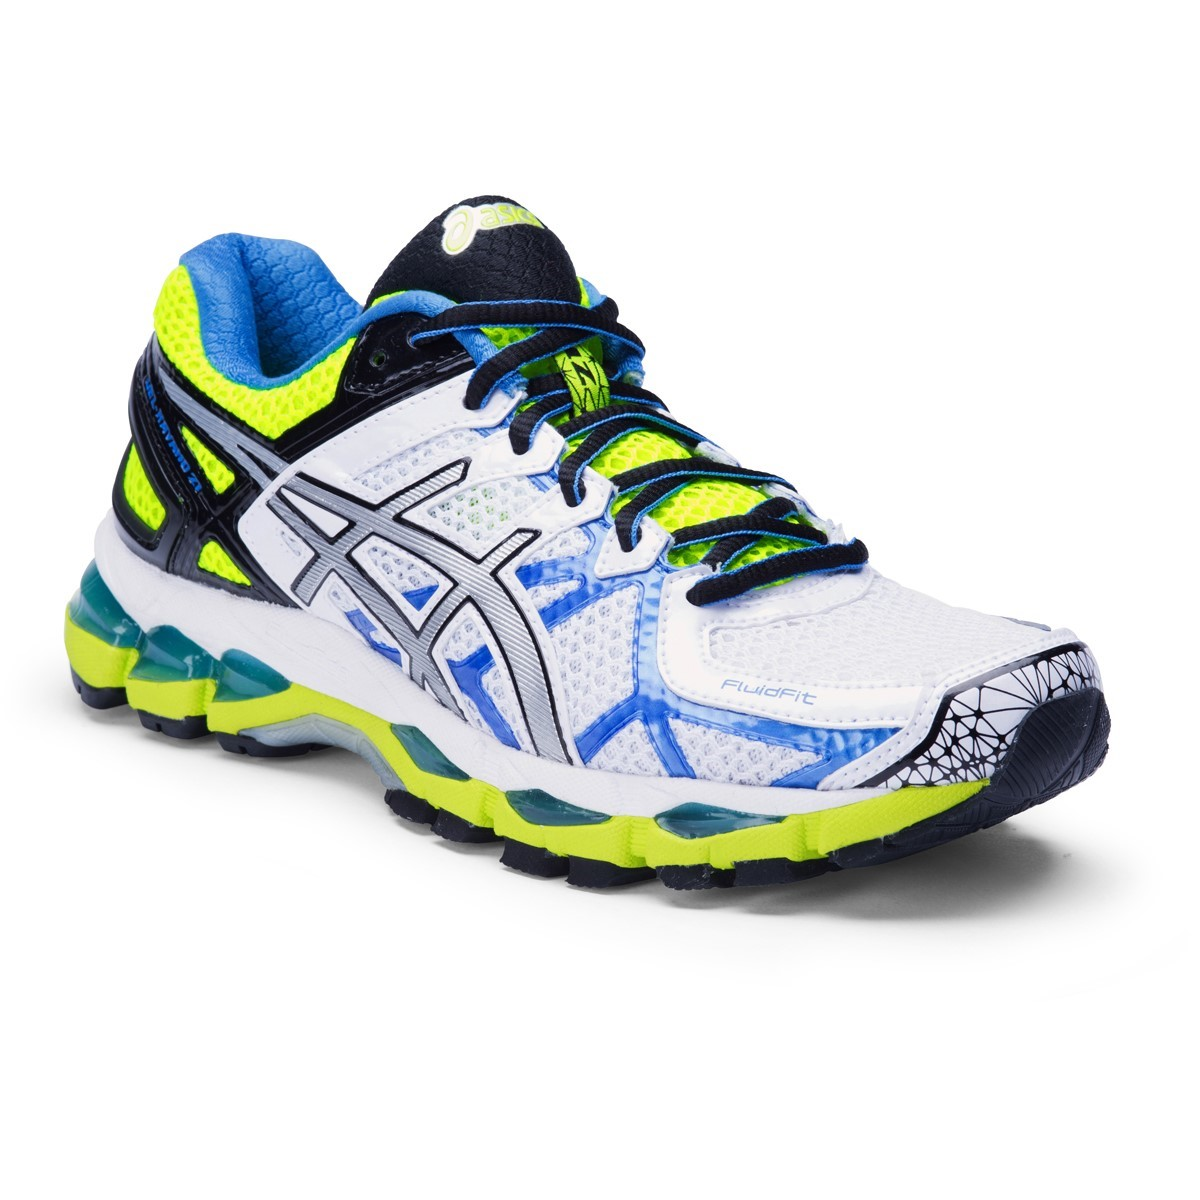 72ae8679c8bce Asics Gel Kayano 21 - SIZE 7US ONLY - Womens Running Shoes - White/Lightning